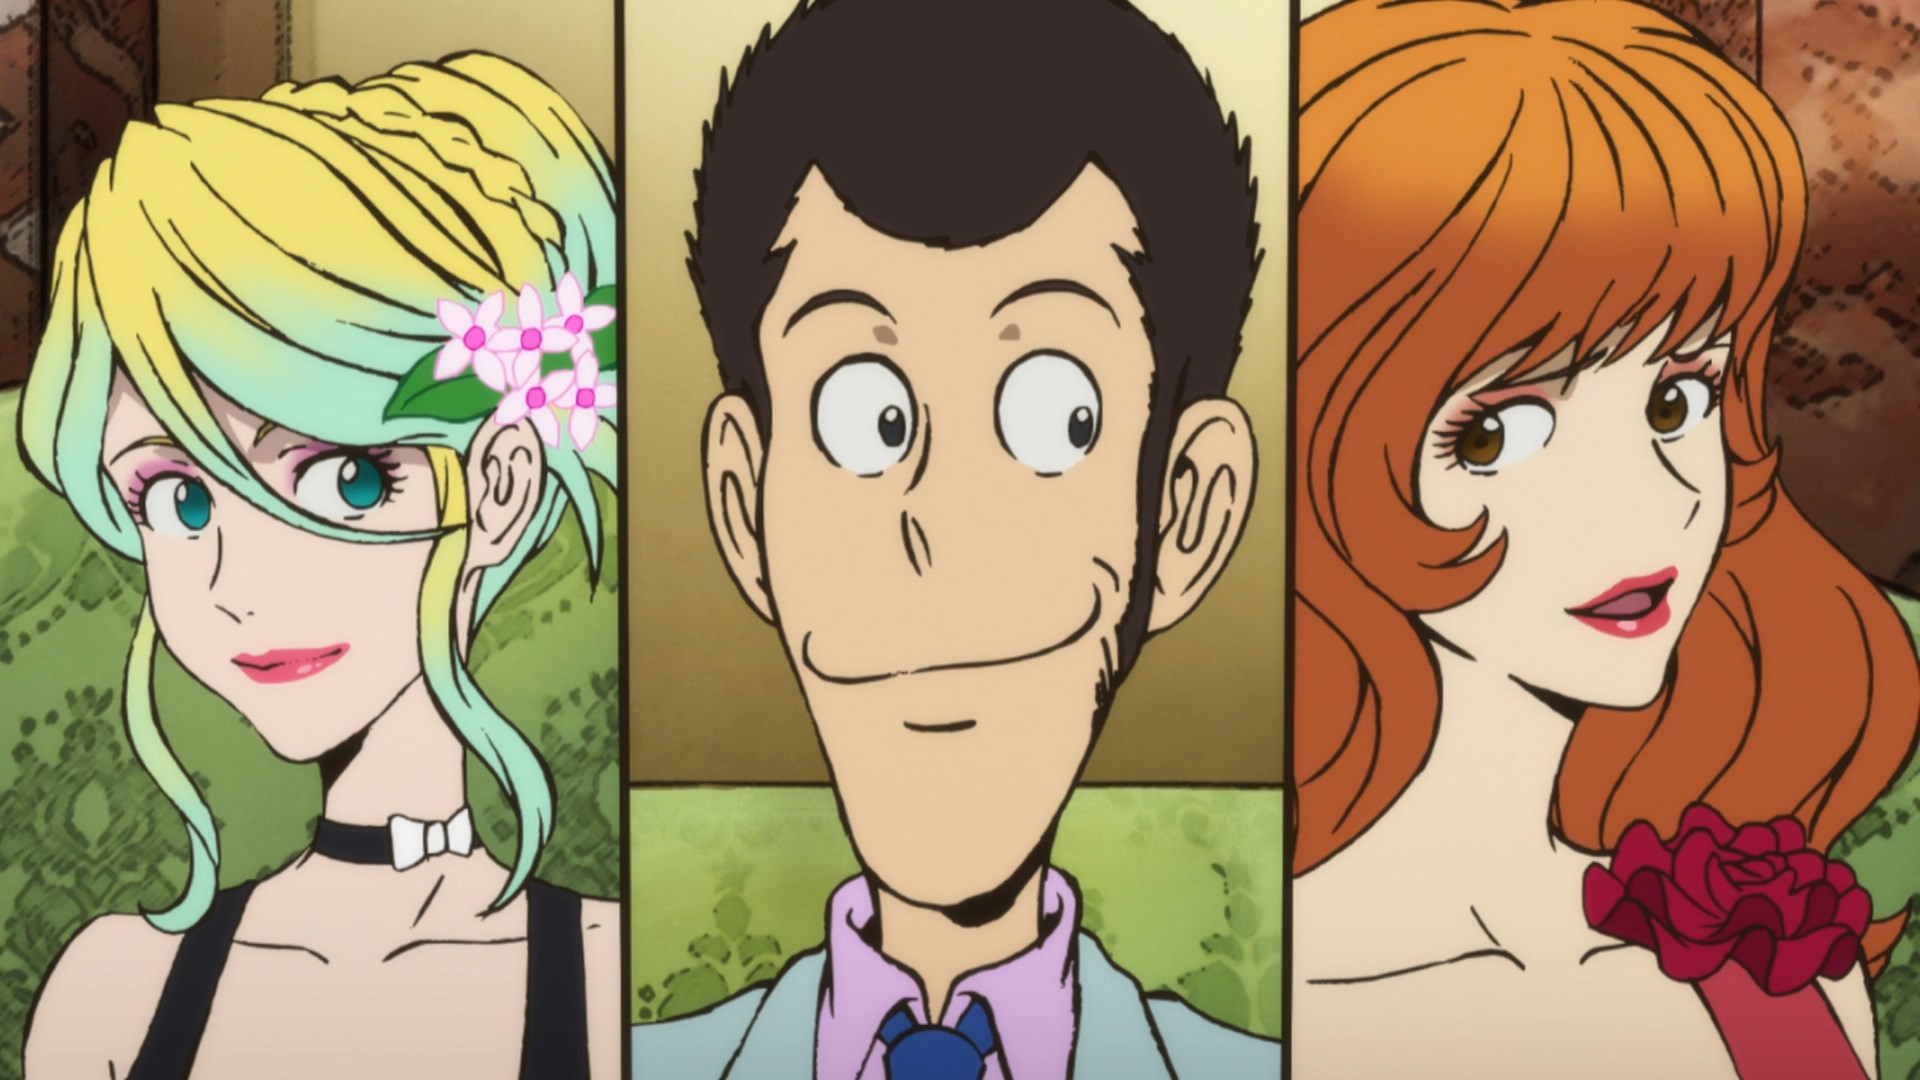 Real Manga Girls Cartoon Wallpaper Lupin The Third Part4 10 Review The Missus And The Ex